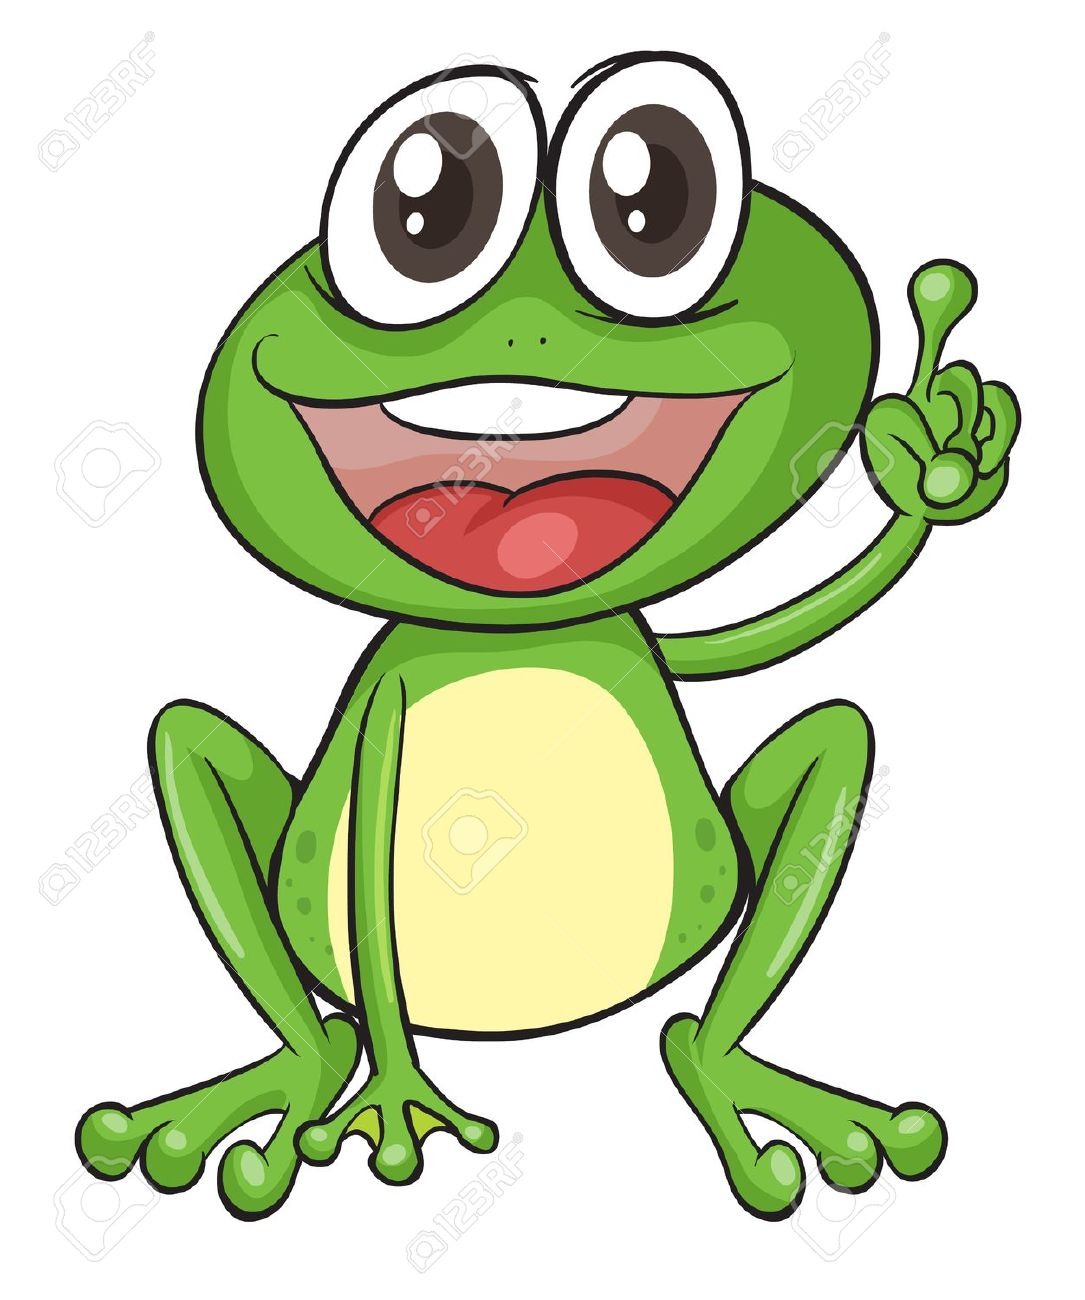 Free frog clip art drawings and colorful-Free frog clip art drawings and colorful images 2 image 8-12